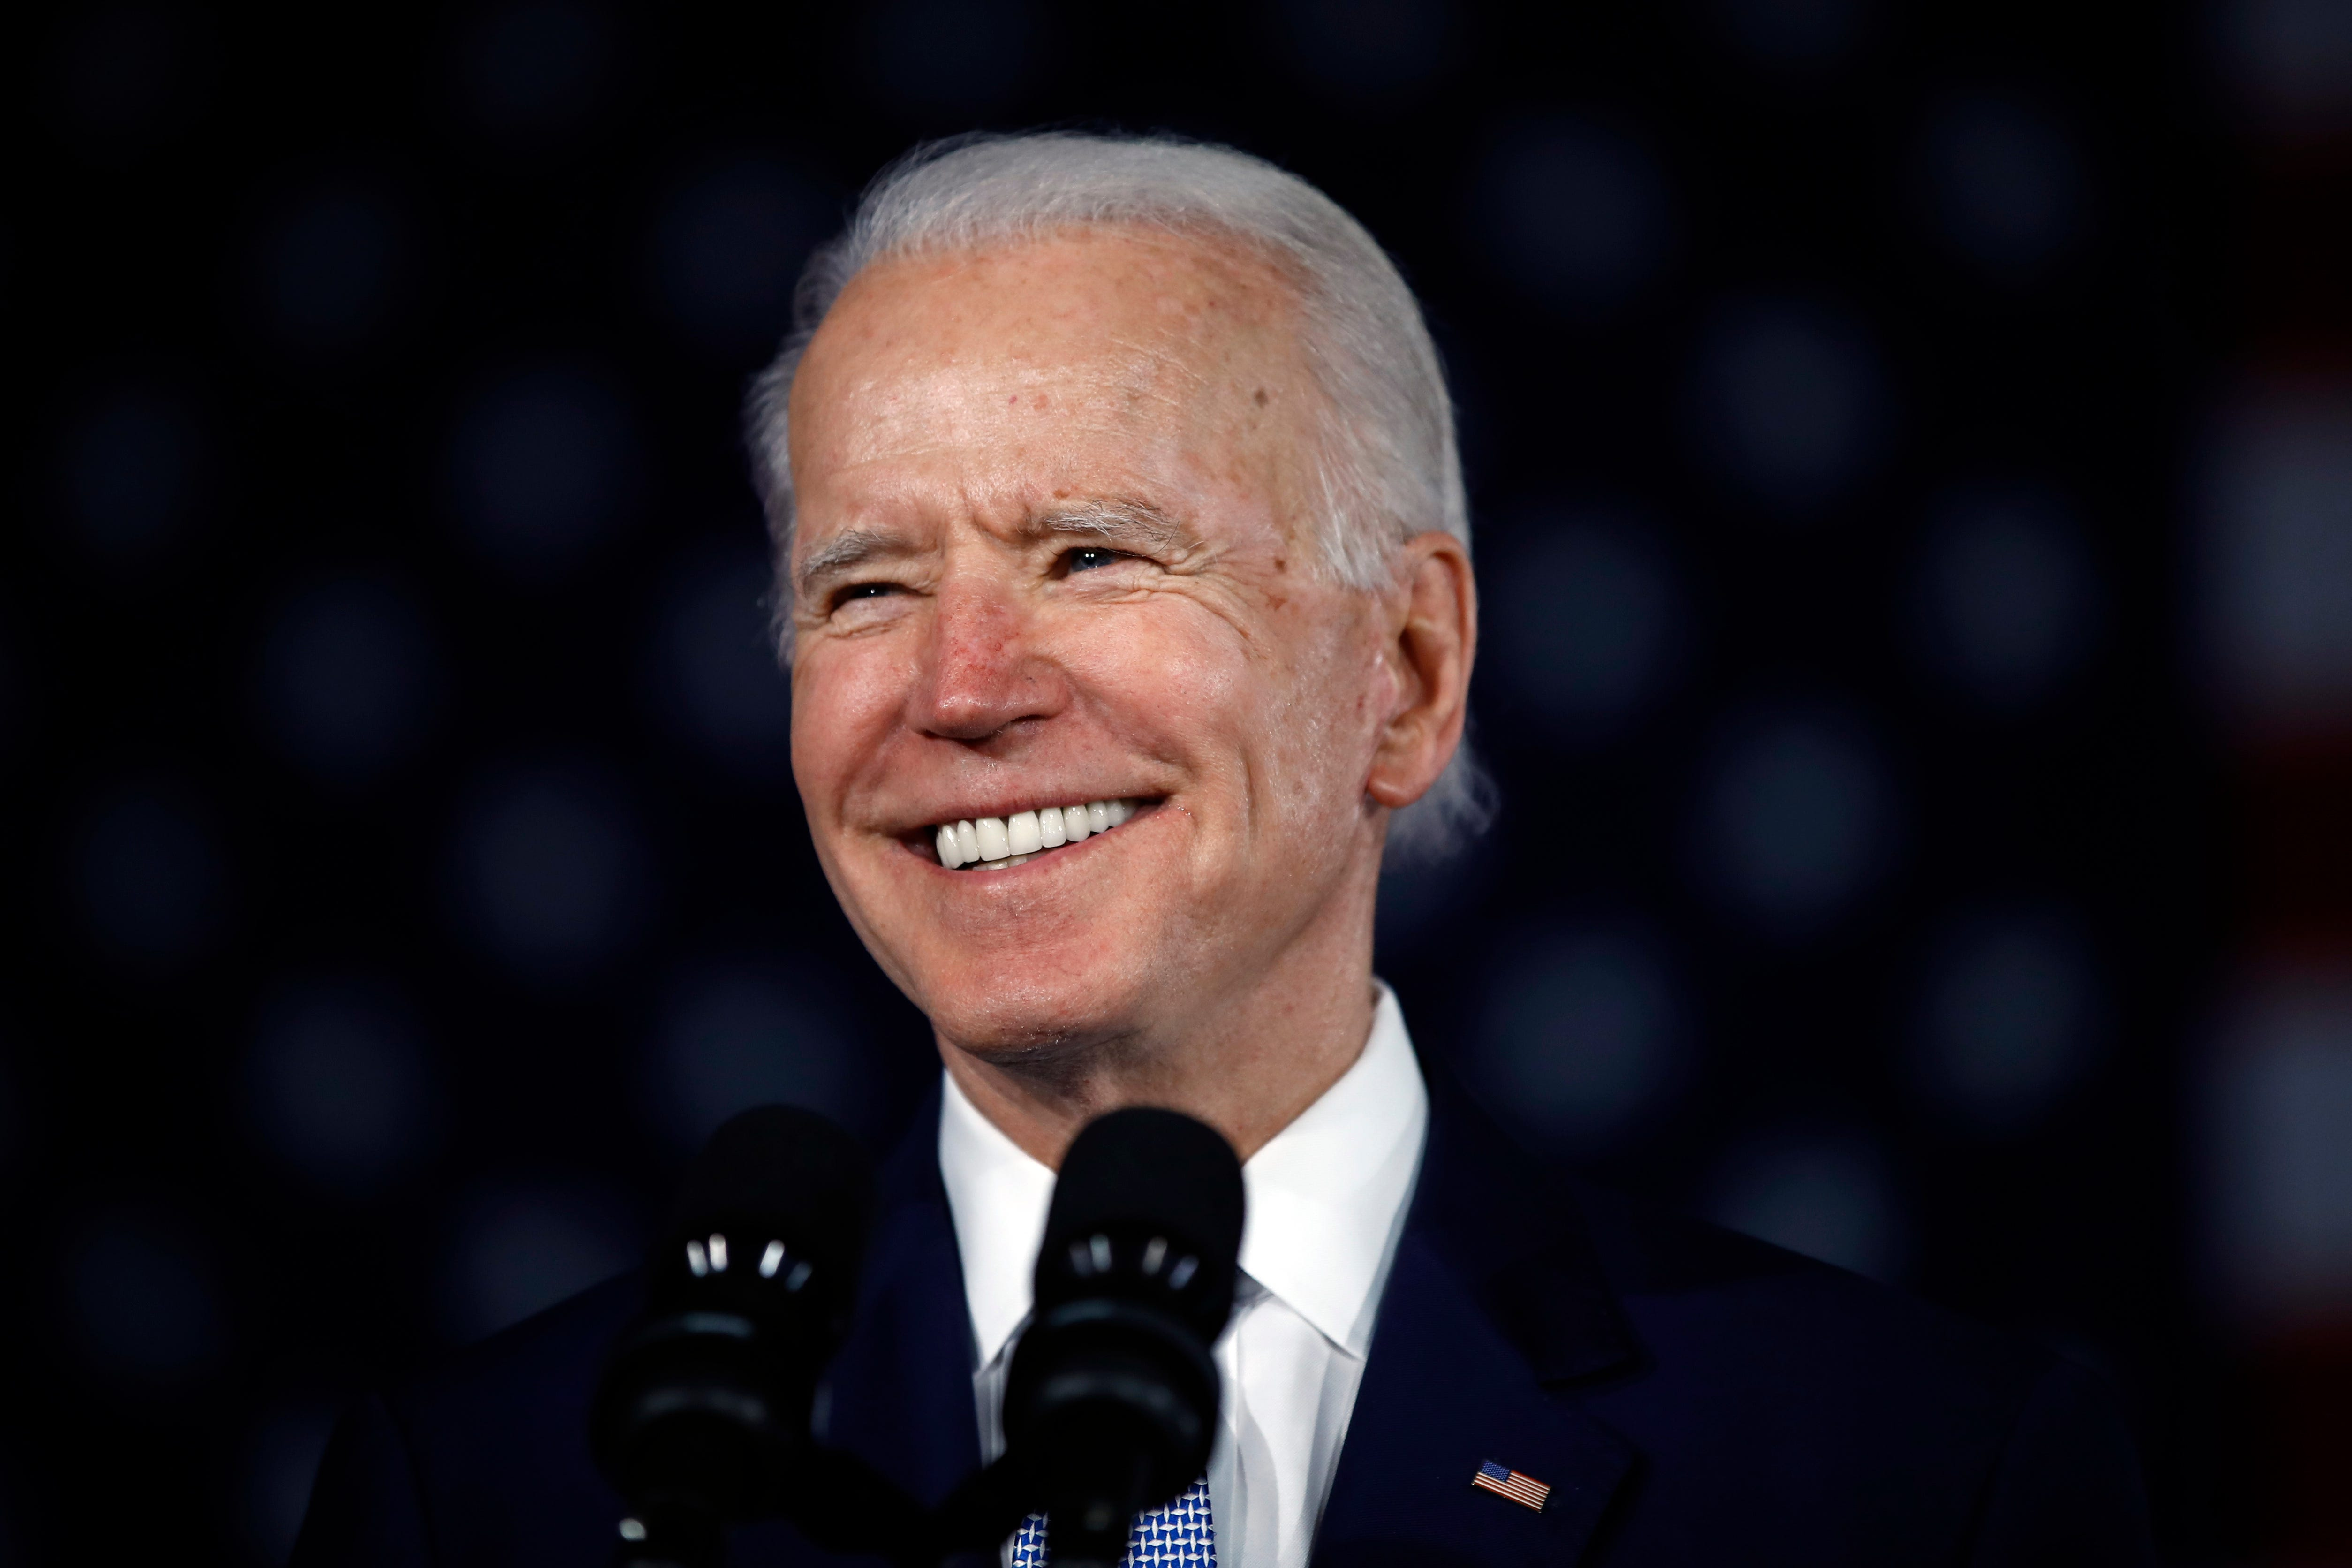 DNC announces sweeping changes to convention, but Biden will still accept nomination in Milwaukee